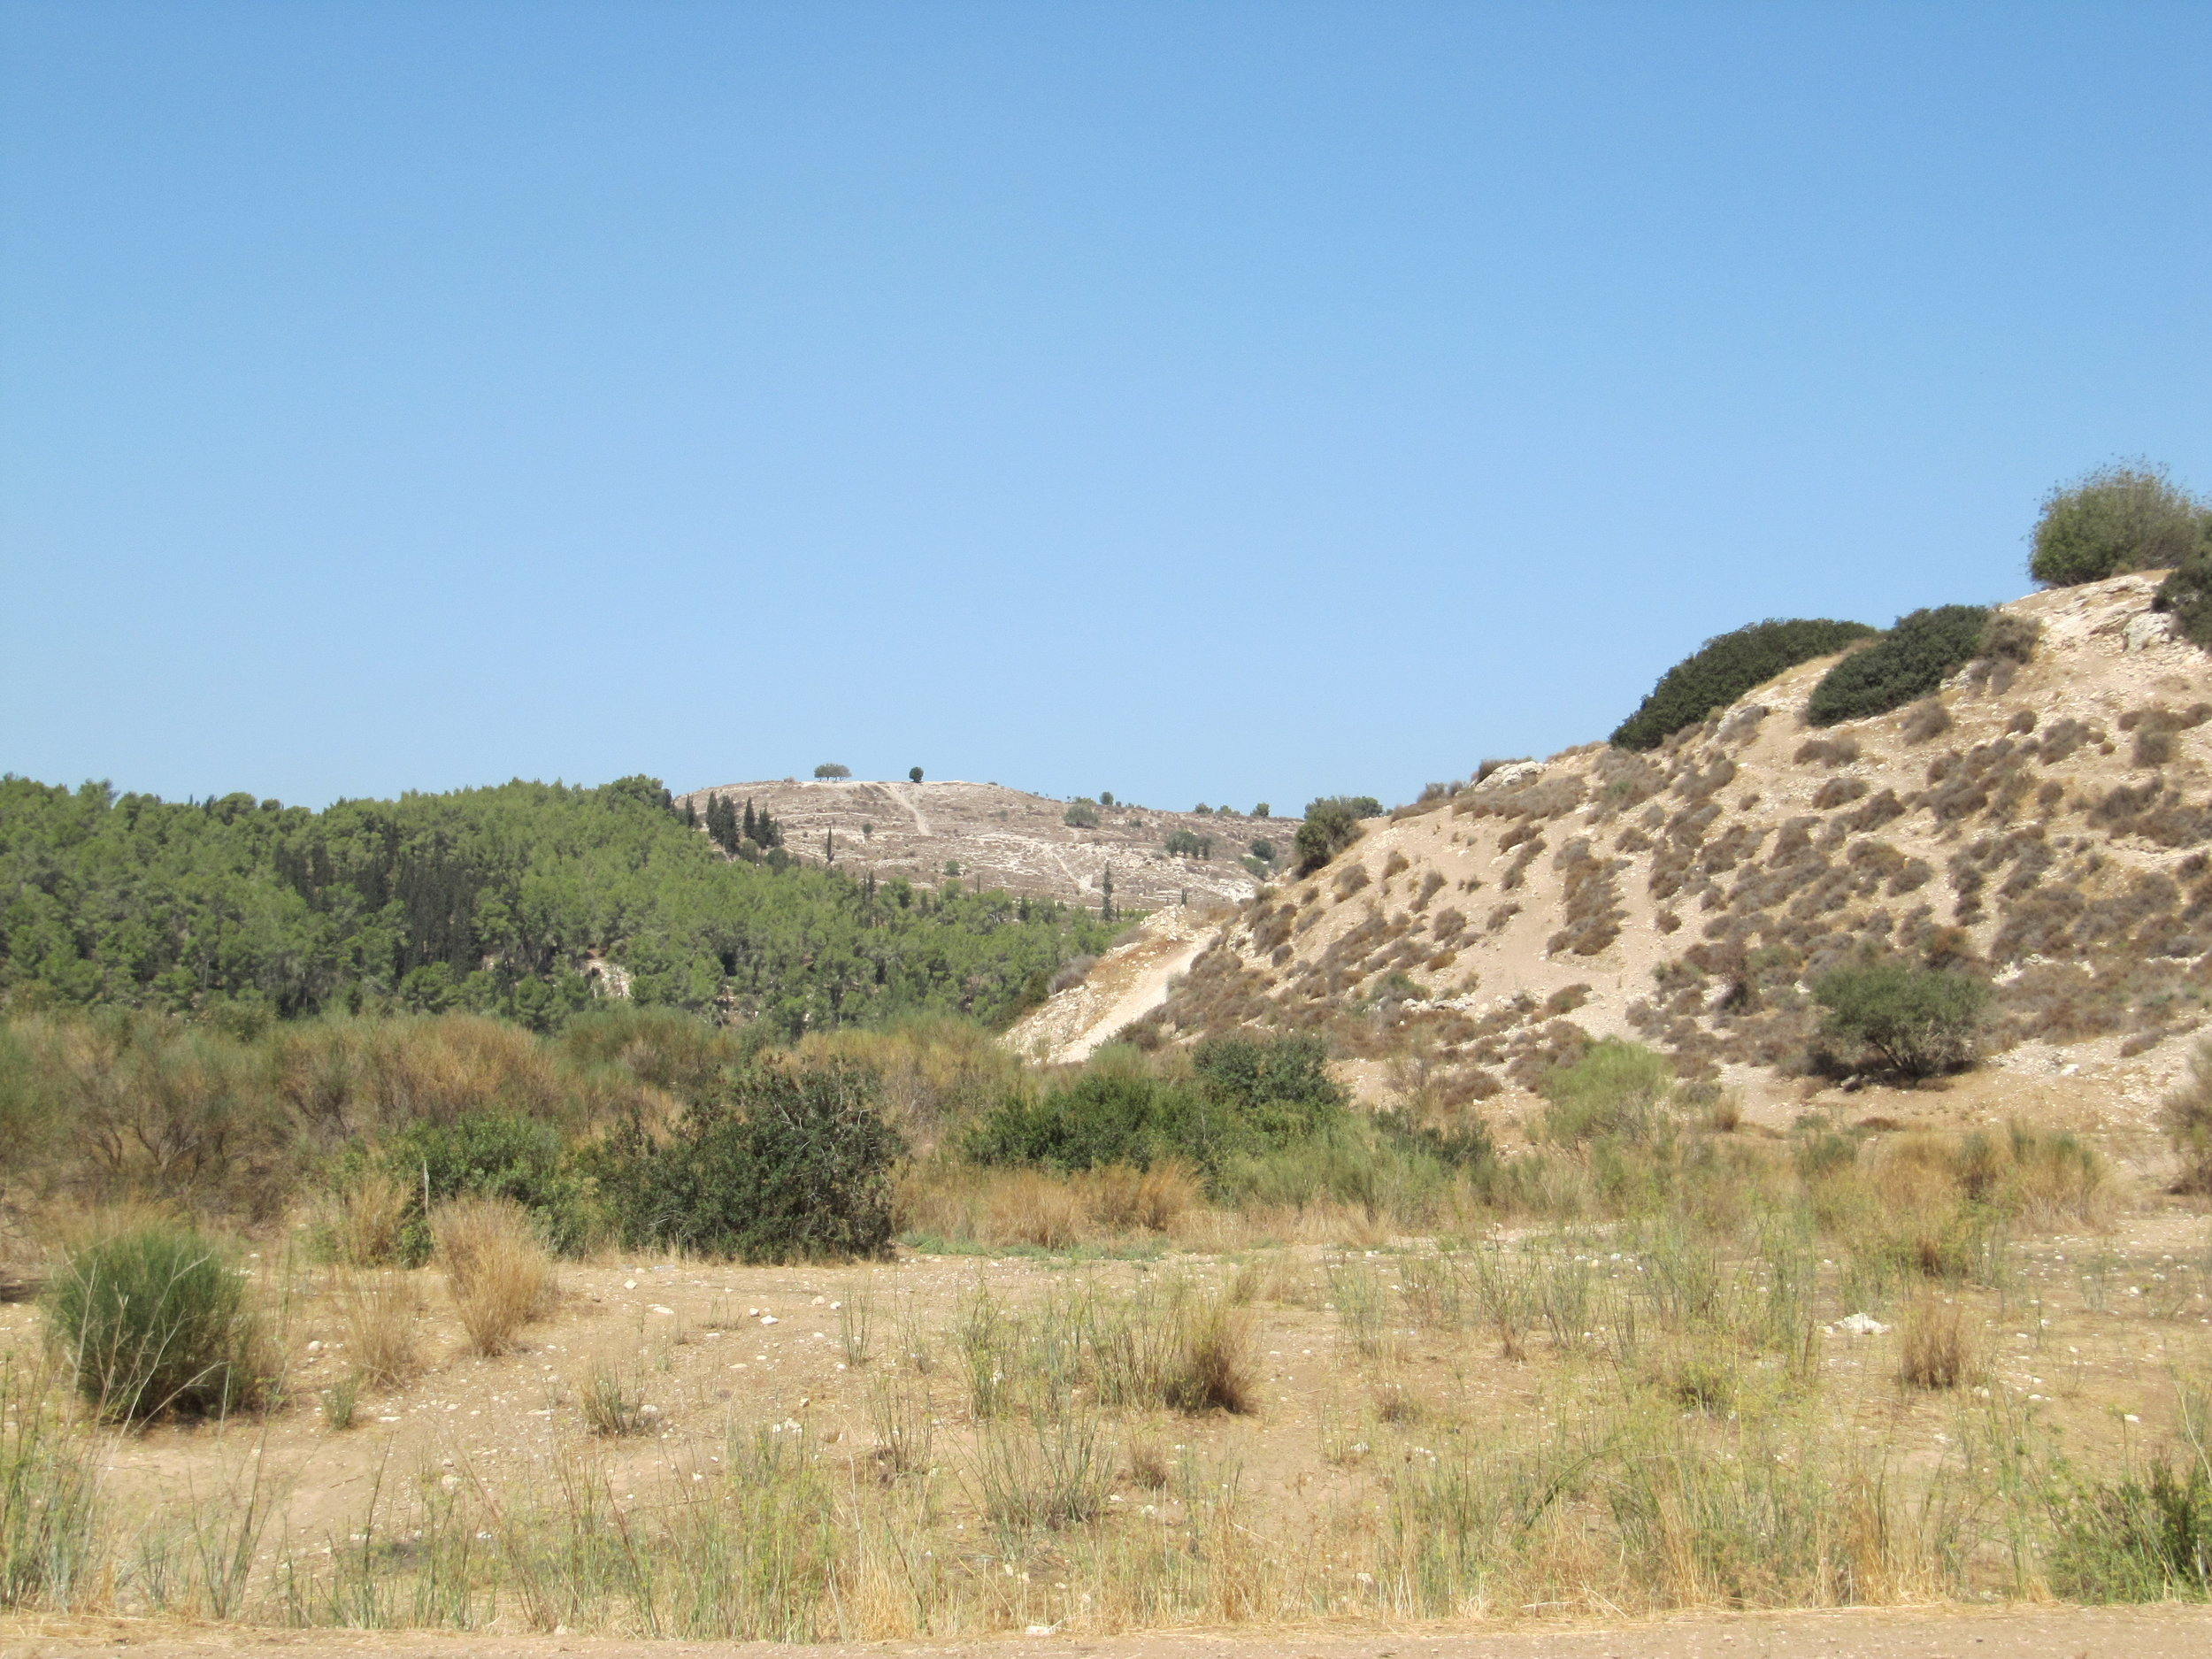 The ancient mound of Azekah - Where the Philistines were camped.